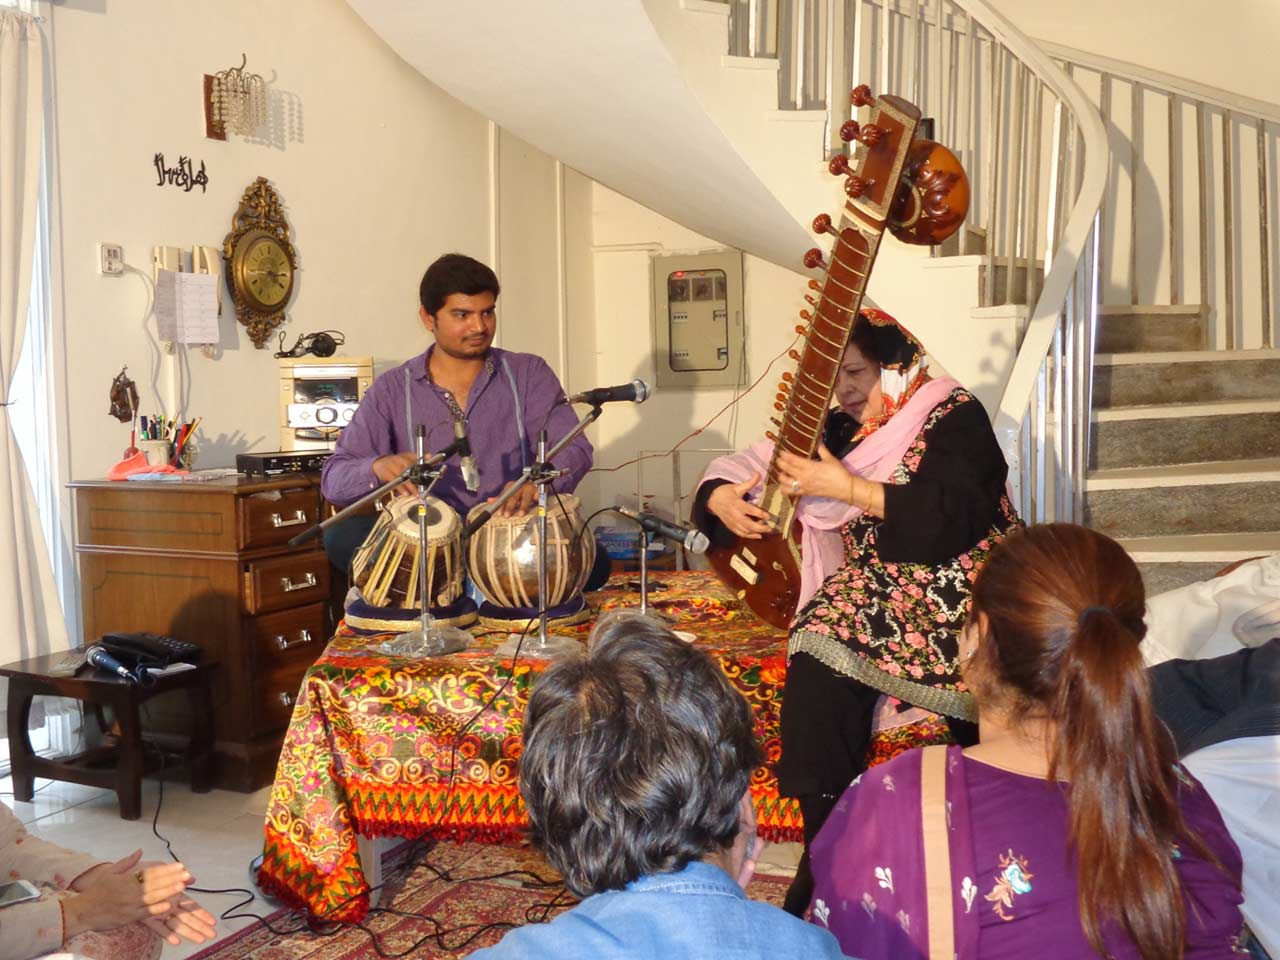 Almas on Tabla and Mrs. Mah Noor Siddiqui on Sitar